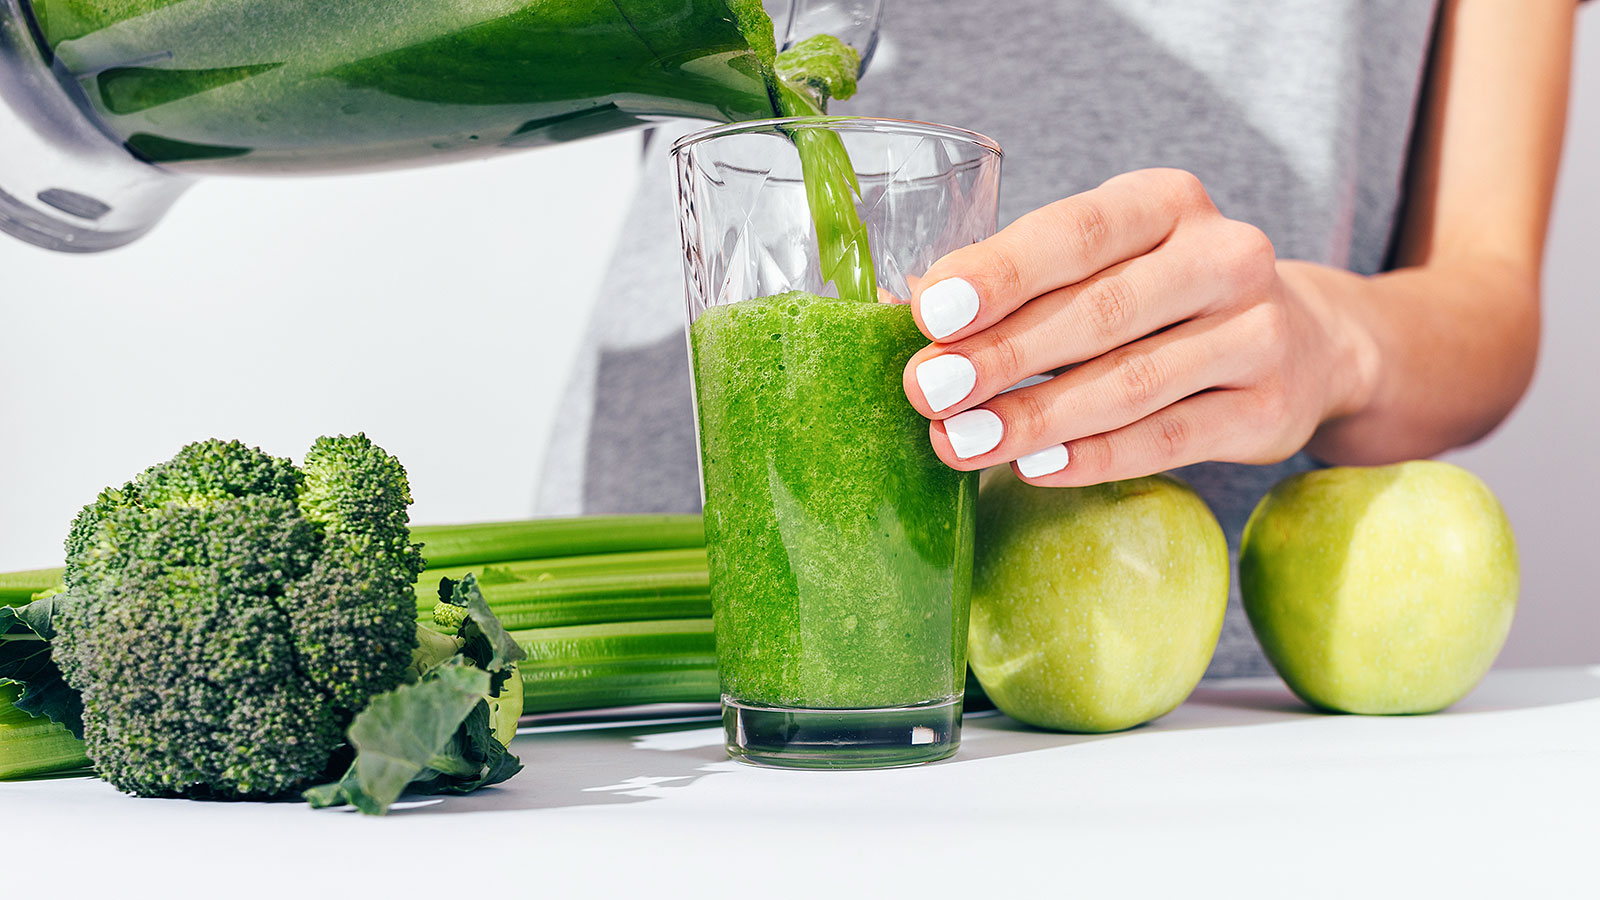 This study shows when clean eating turns into a full-on eating disorder